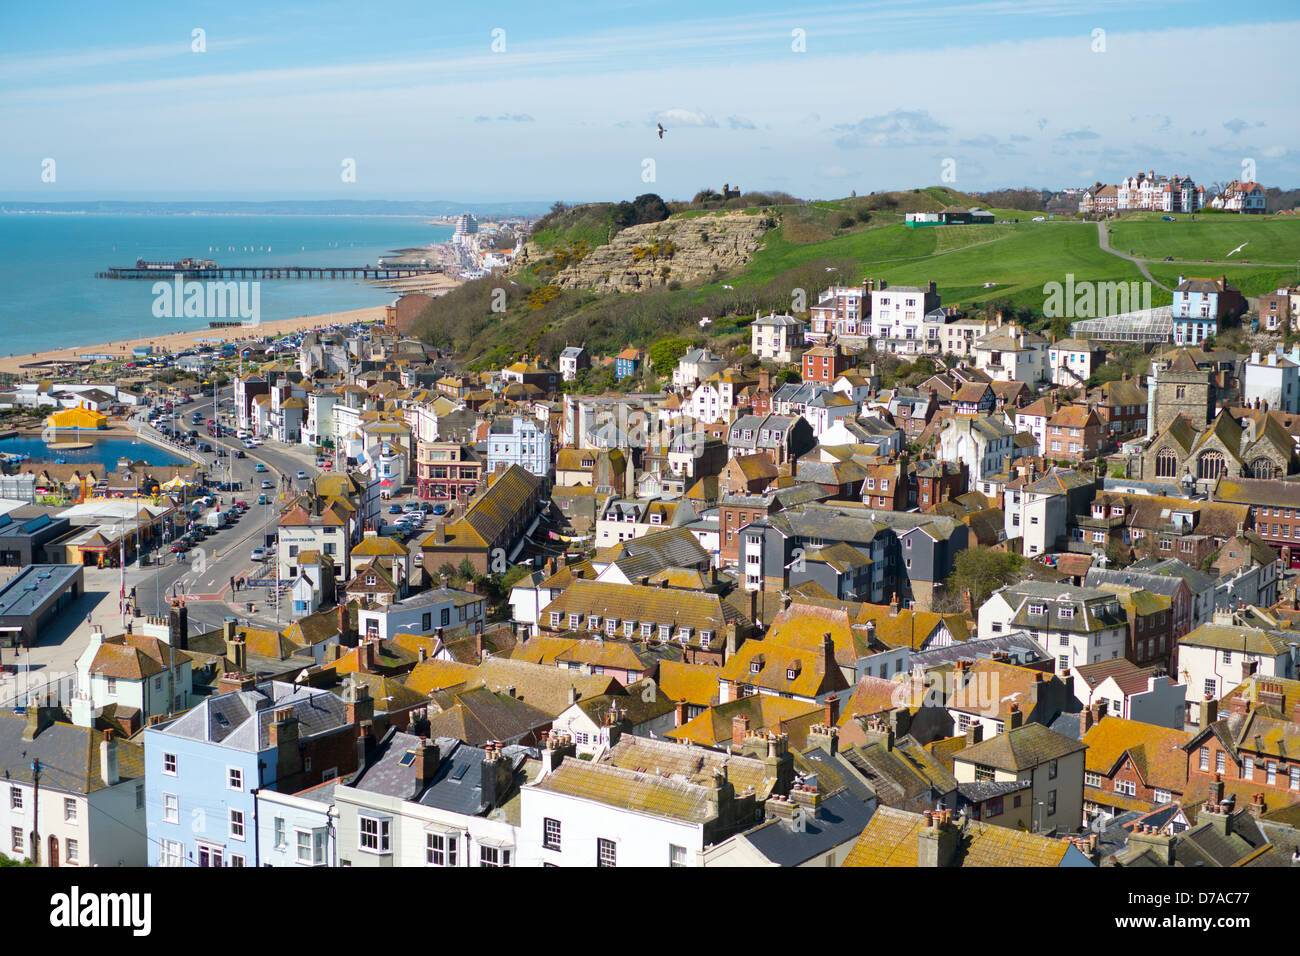 Old town, West Hill, Hastings, Sussex, England - Stock Image